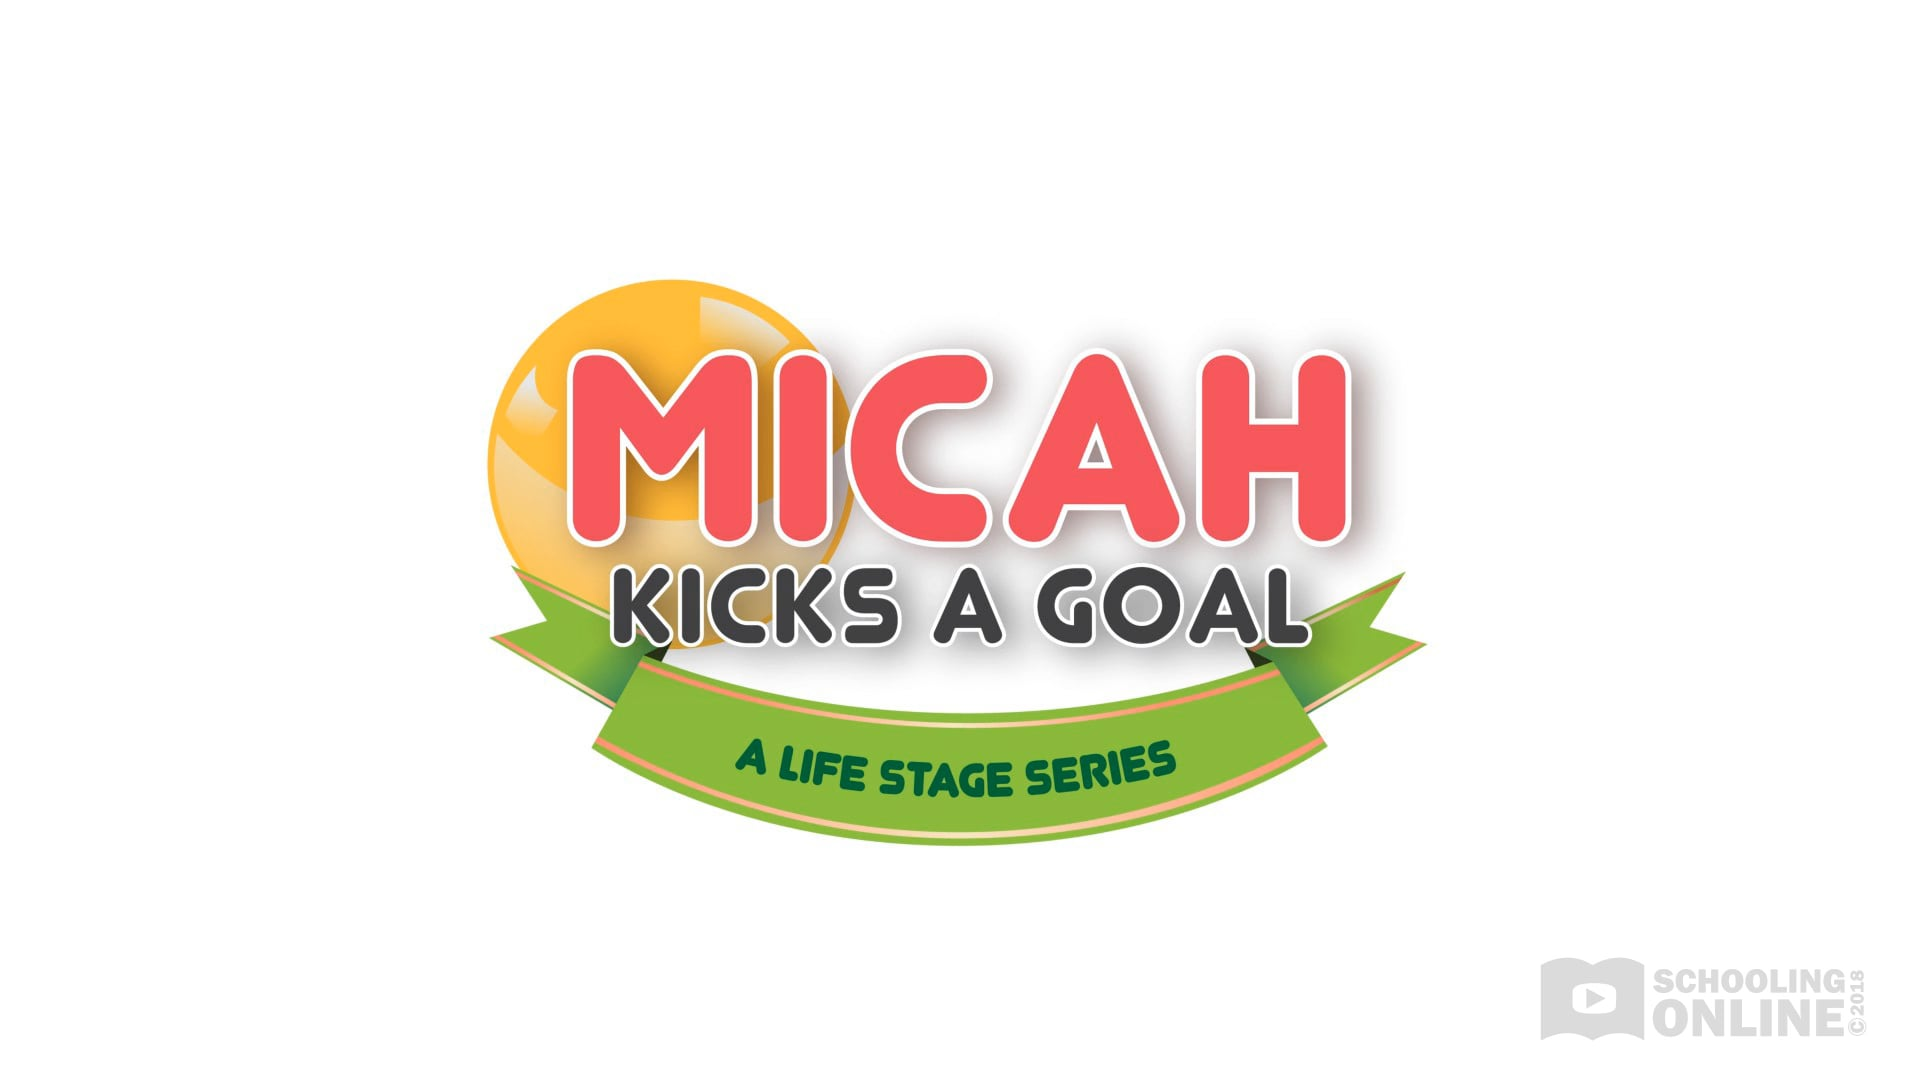 Micah Kicks a Goal - The Life Stage Series